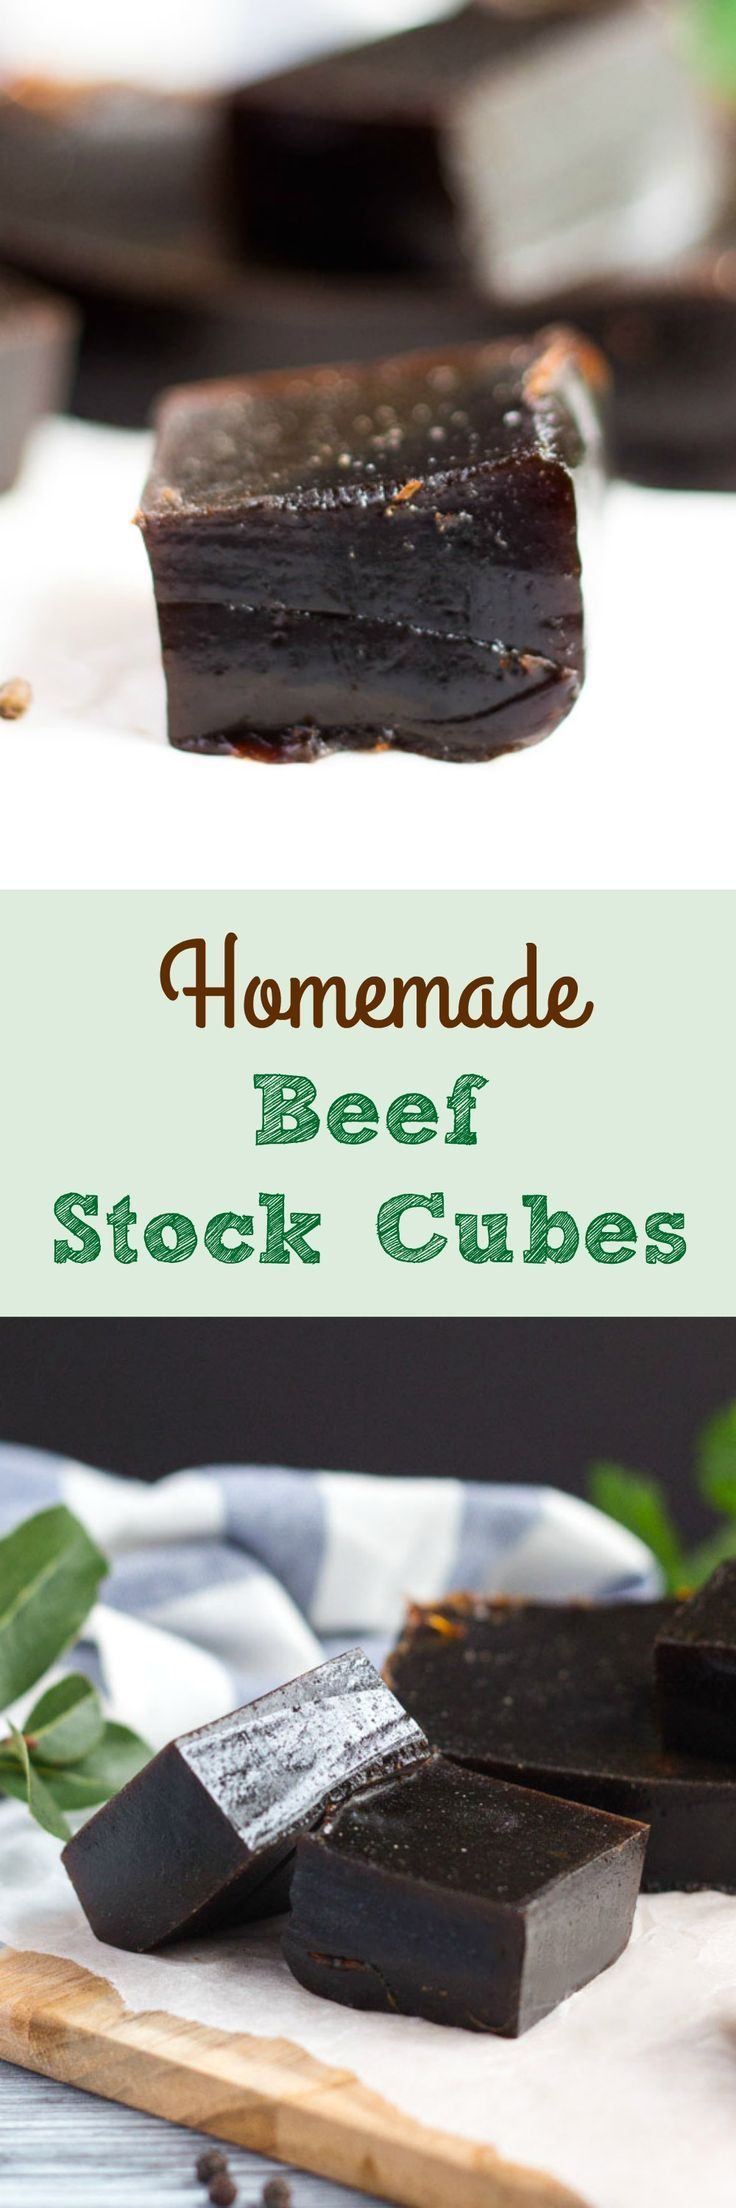 Homemade Beef Stock Cubes. Easy to make, and with a lot more beef (& a lot less additives) than any equivalent commercial variety.